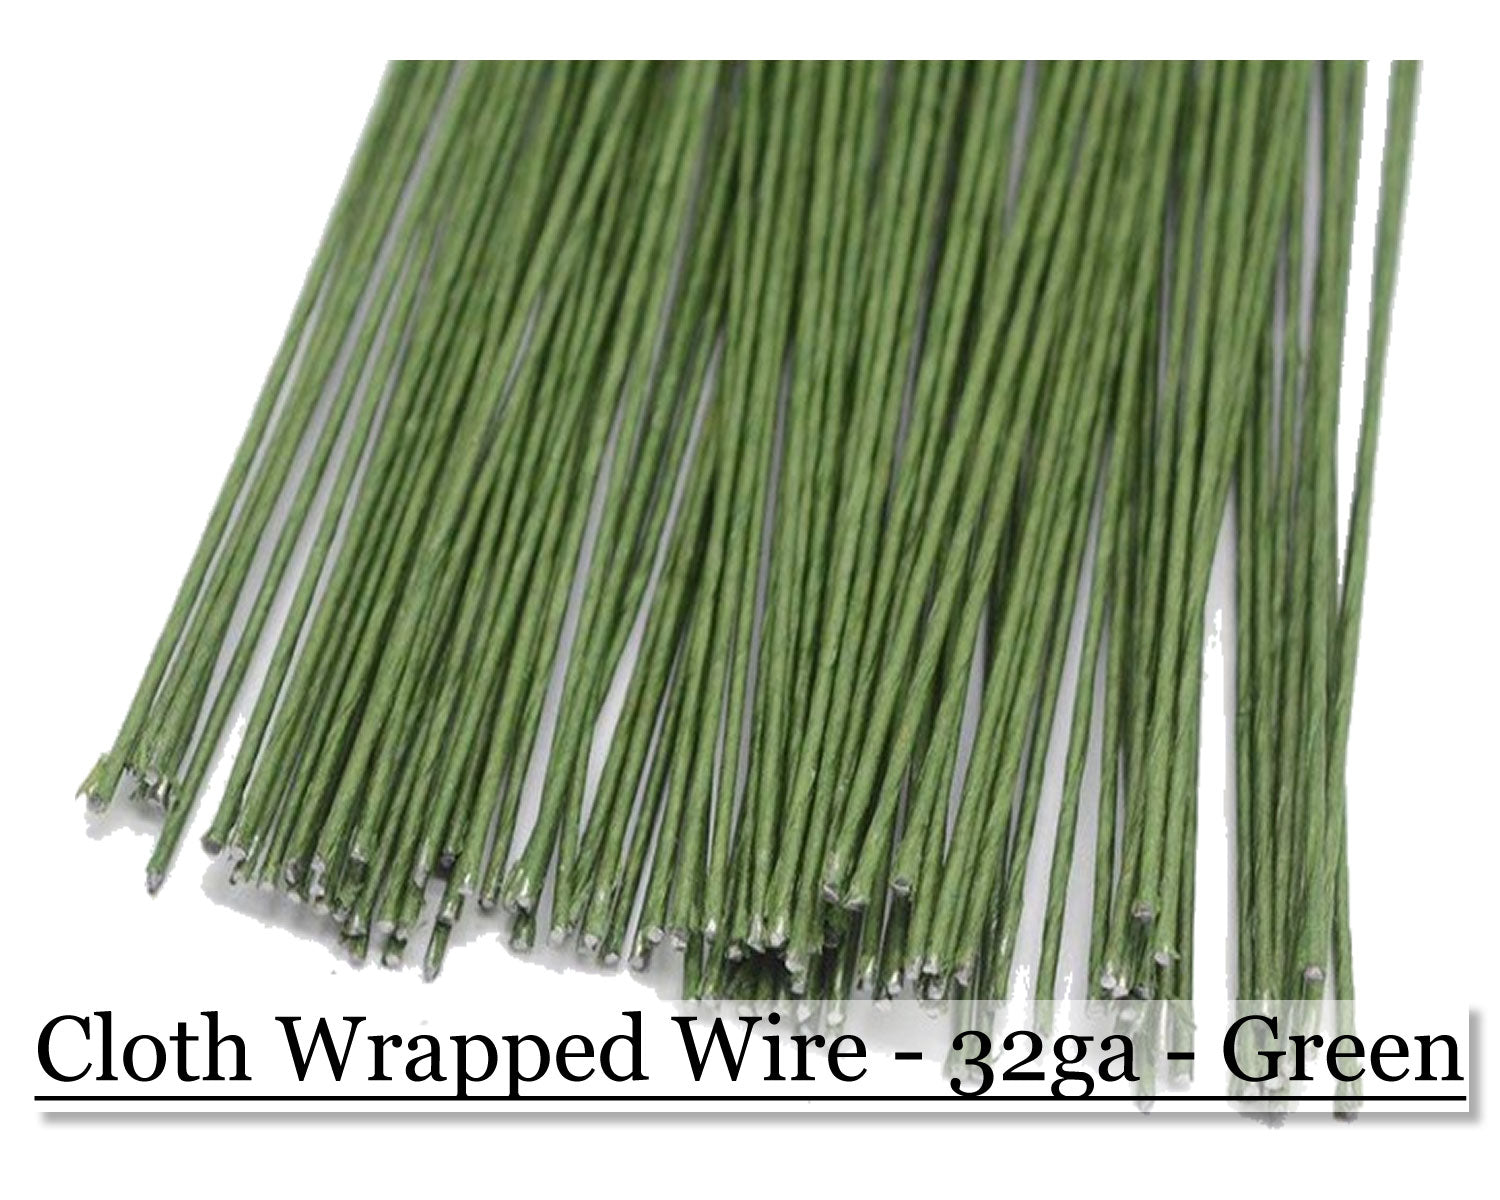 Cloth wrapped wire 32ga - Green